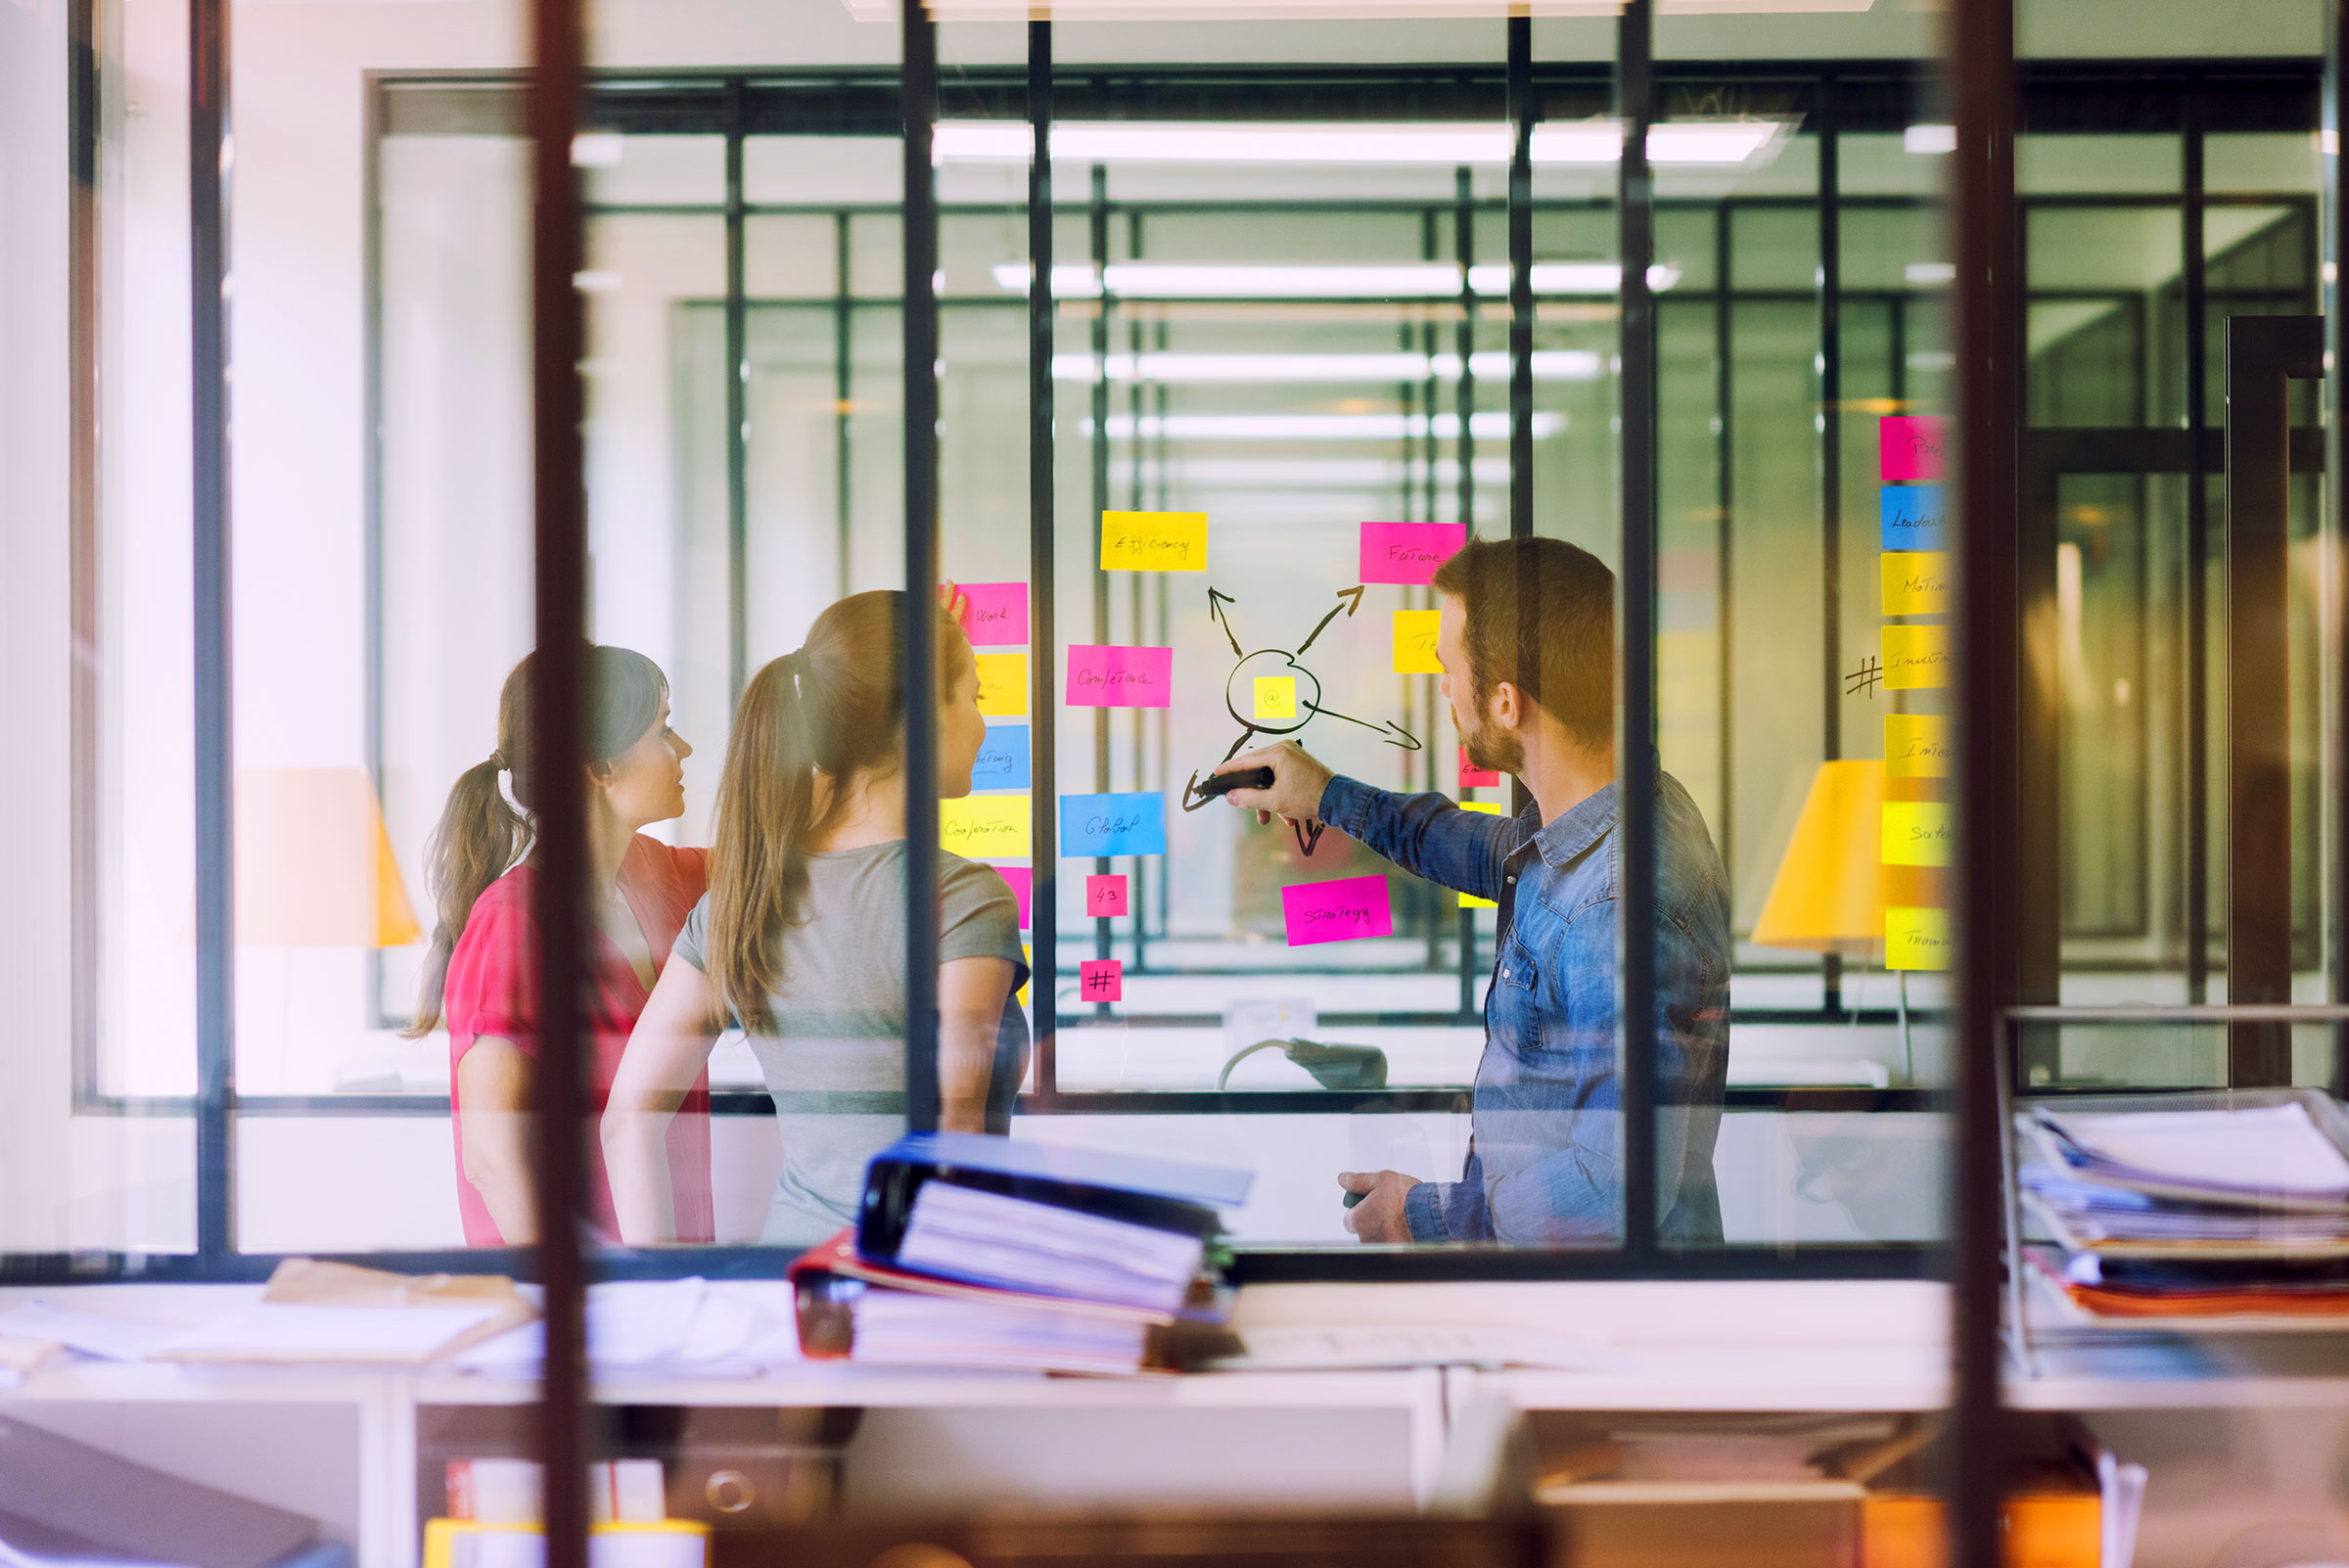 Group-of-business-people-working-in-front-of-glass-wall-with-post-notes